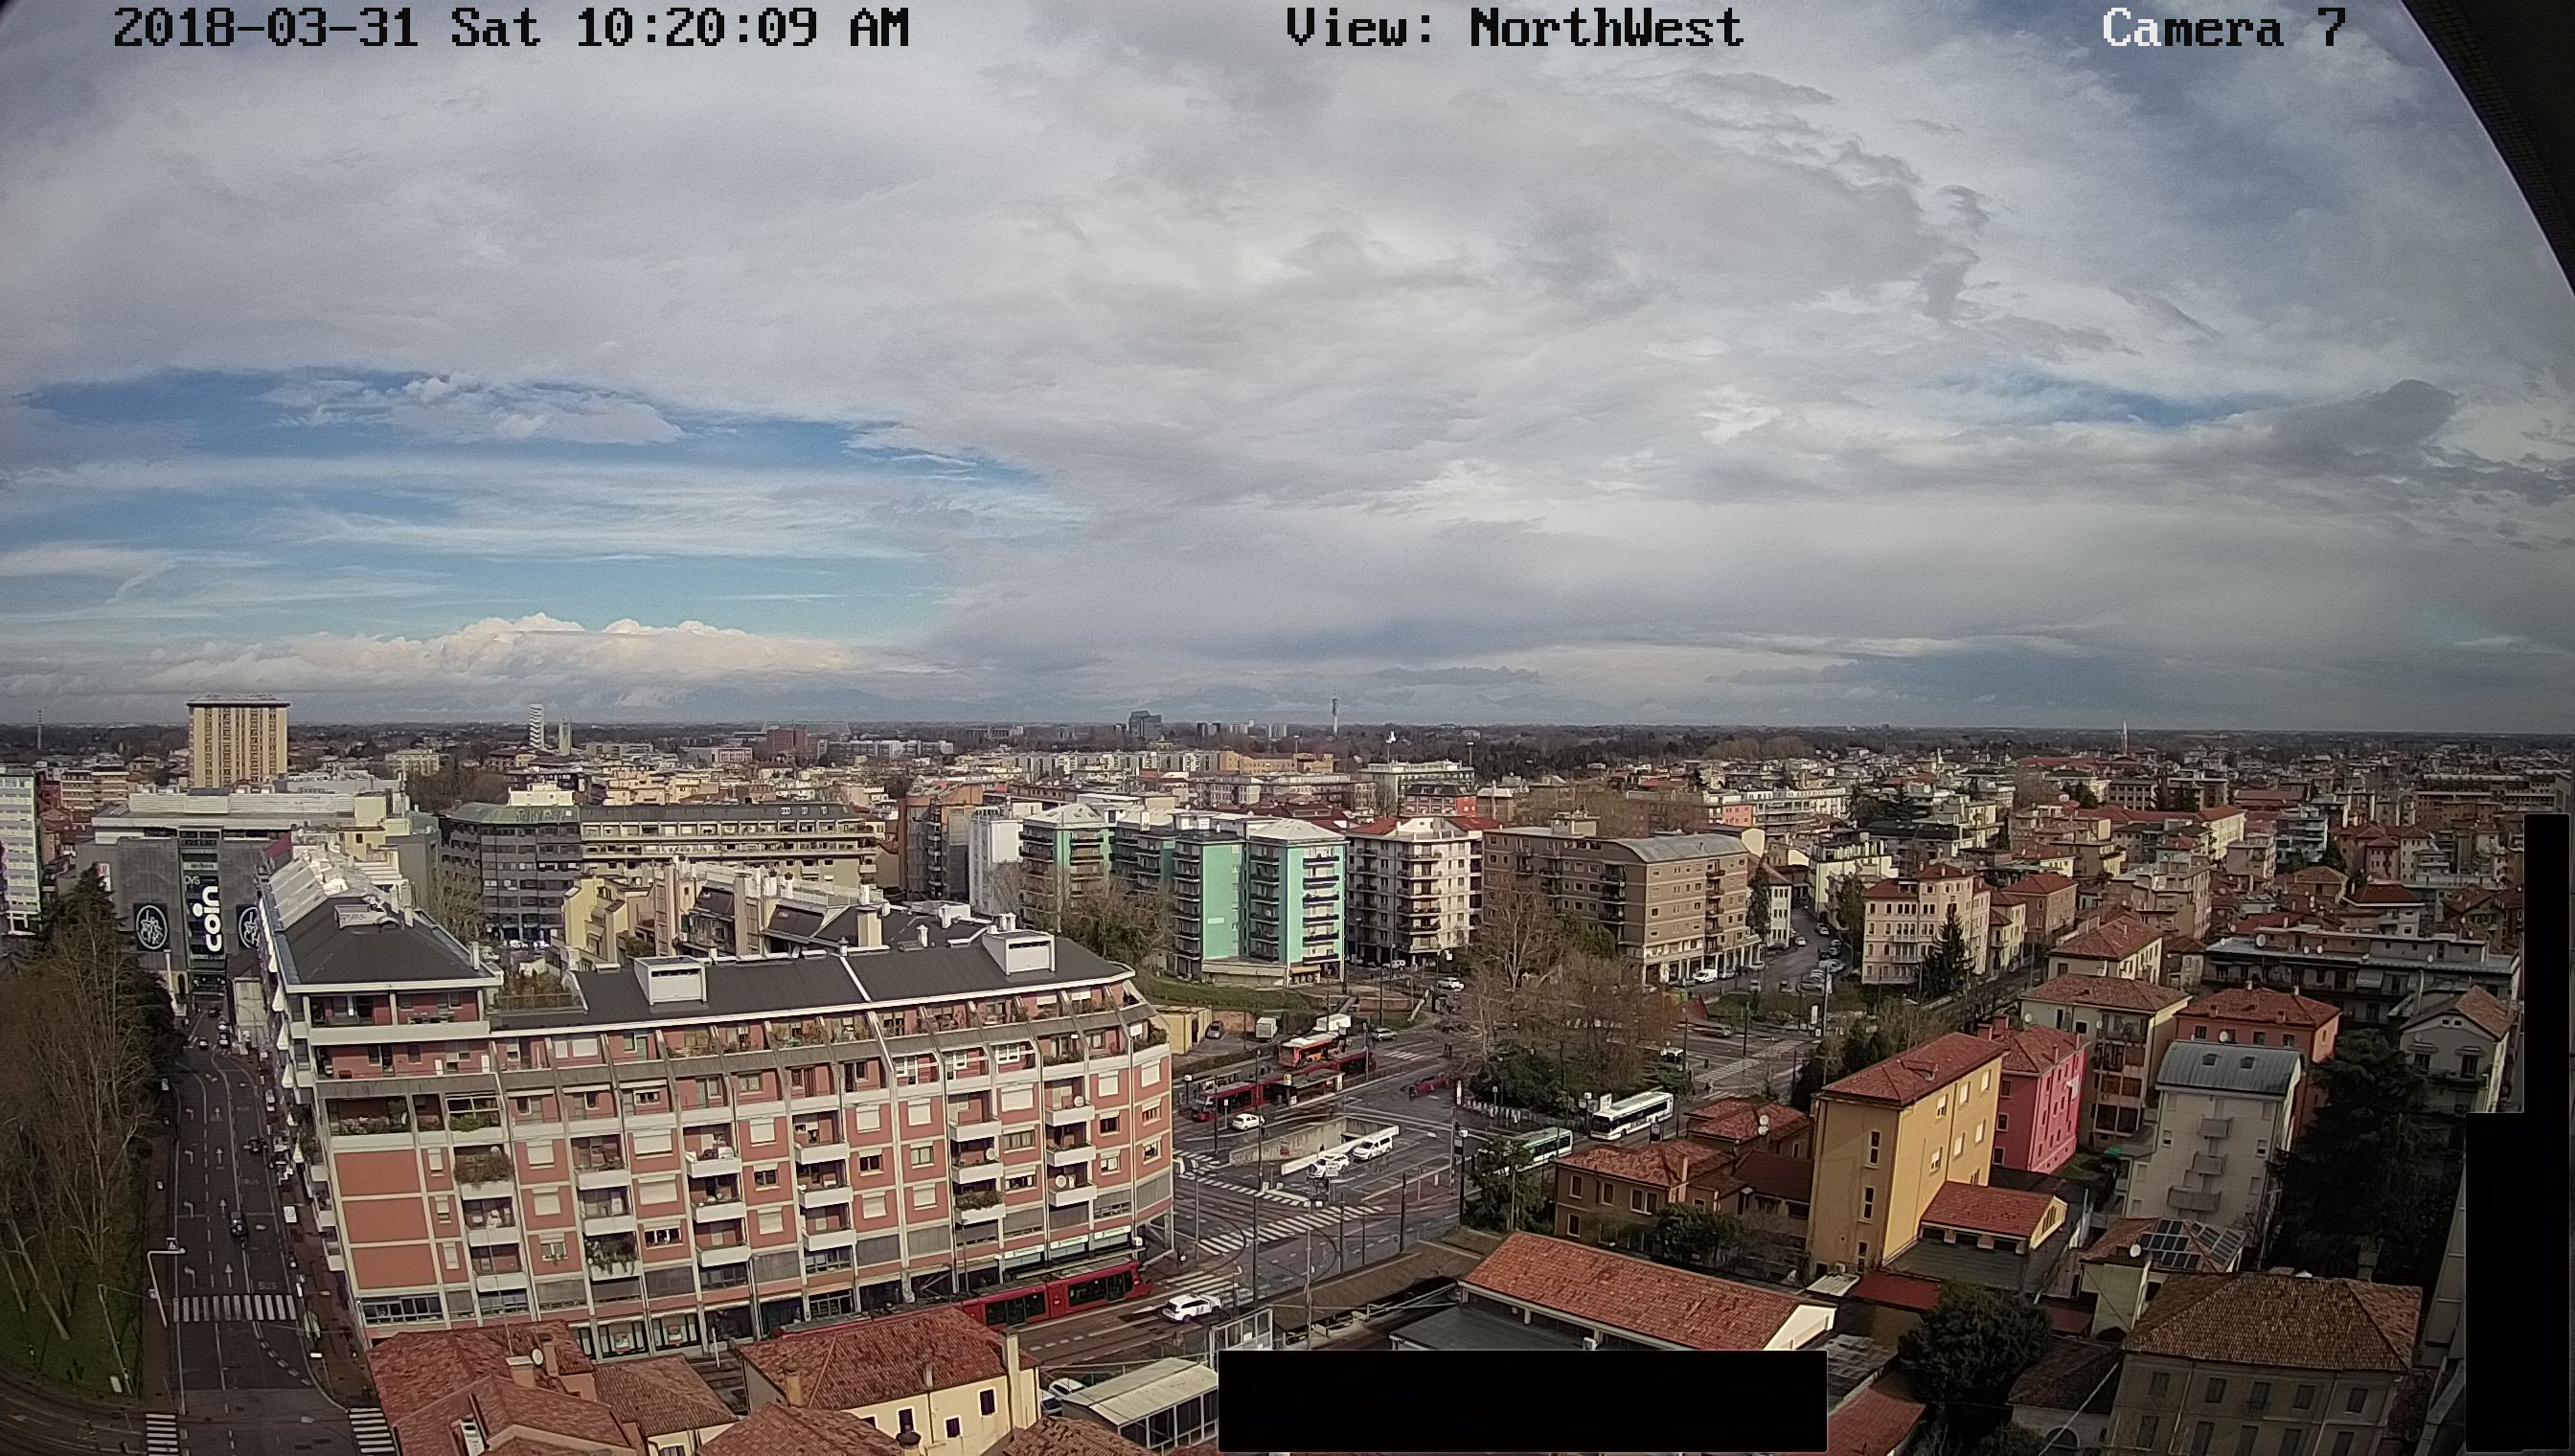 Permessi per installazione webcam ?-192.168.0.207_01_20180331102009157_timing.jpg